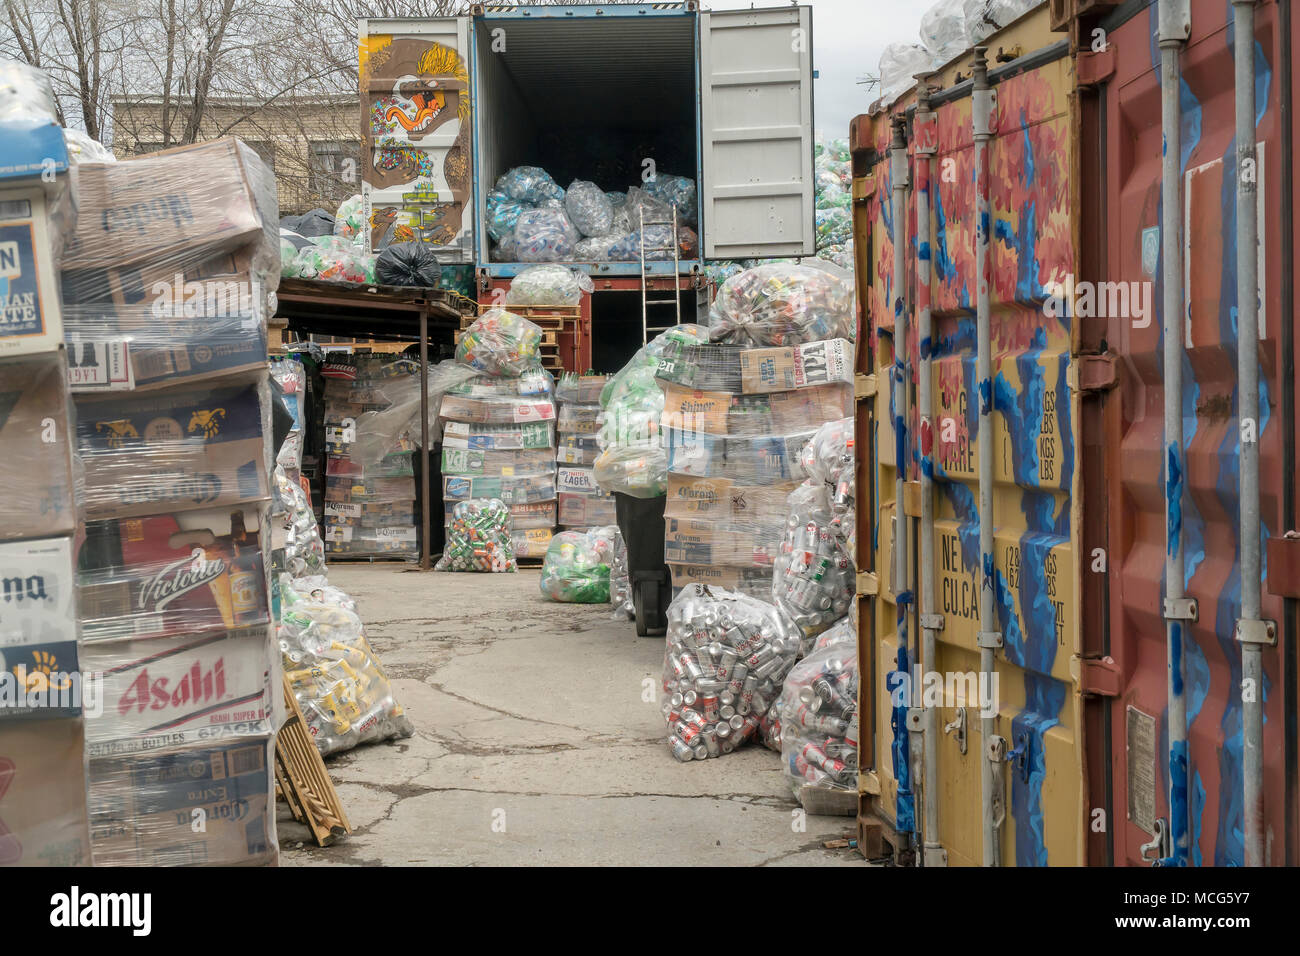 Thousands of bottles and cans await pick-up from distributors at the Sure We Can non-profit redemption center in the Bushwick neighborhood of Brooklyn in New York on Saturday, April 7, 2018. Canners from all over Brooklyn use this center to sort their finds and redeem the deposit money.  The bags of cans are stored until there are enough to fill a tractor trailer from each individual distributor who is responsible for picking them up. (©ÊRichard B. Levine) - Stock Image